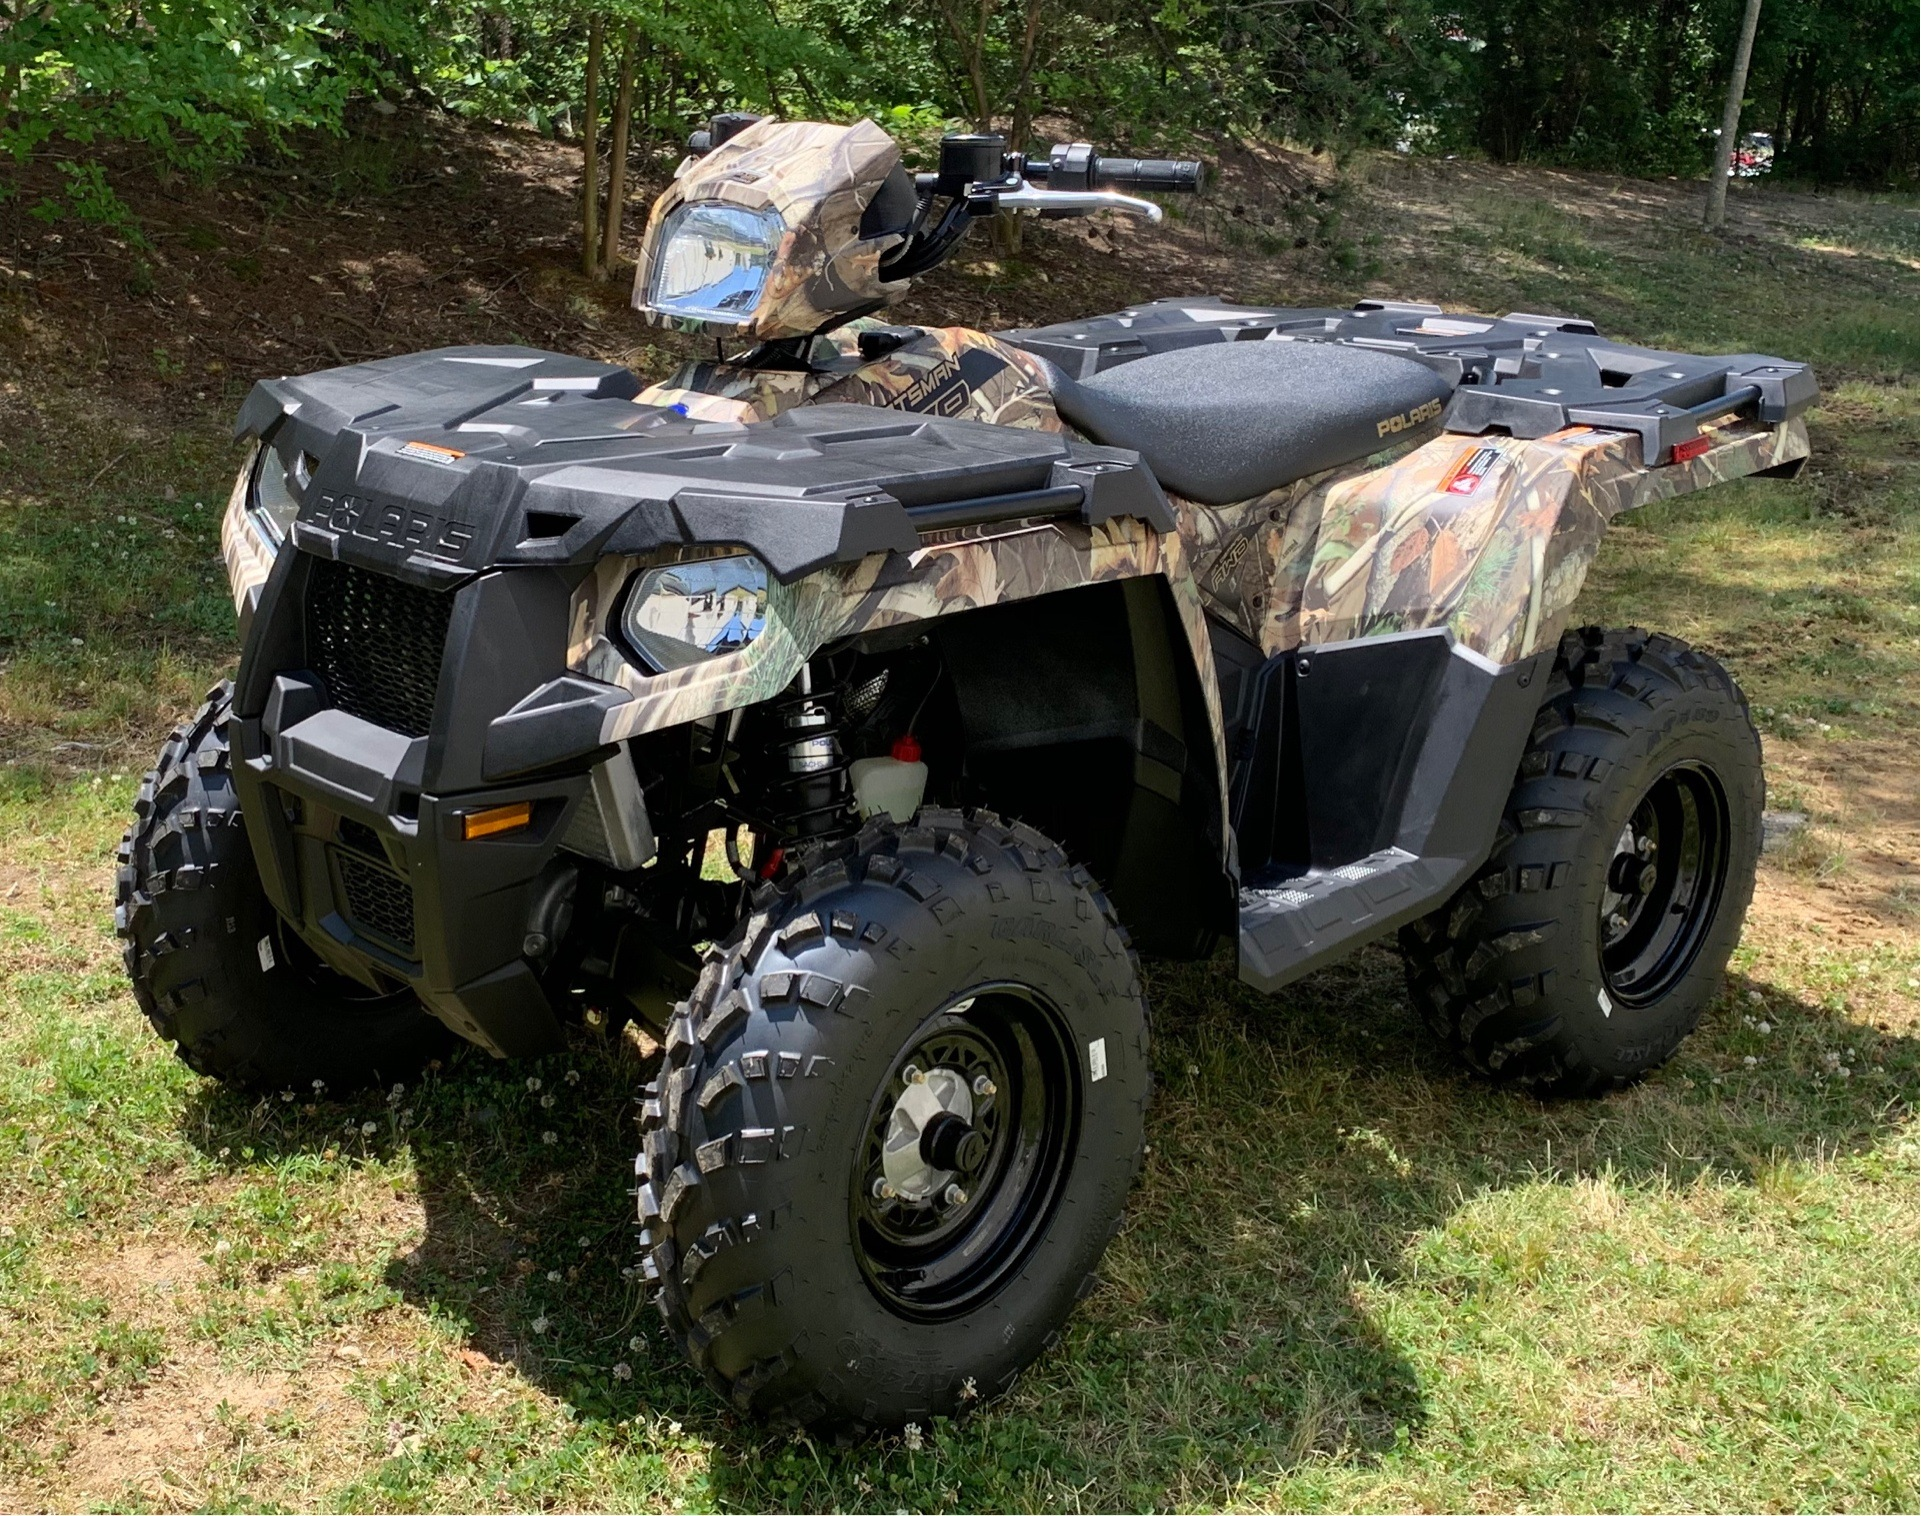 2019 Polaris Sportsman 570 EPS Camo in High Point, North Carolina - Photo 2